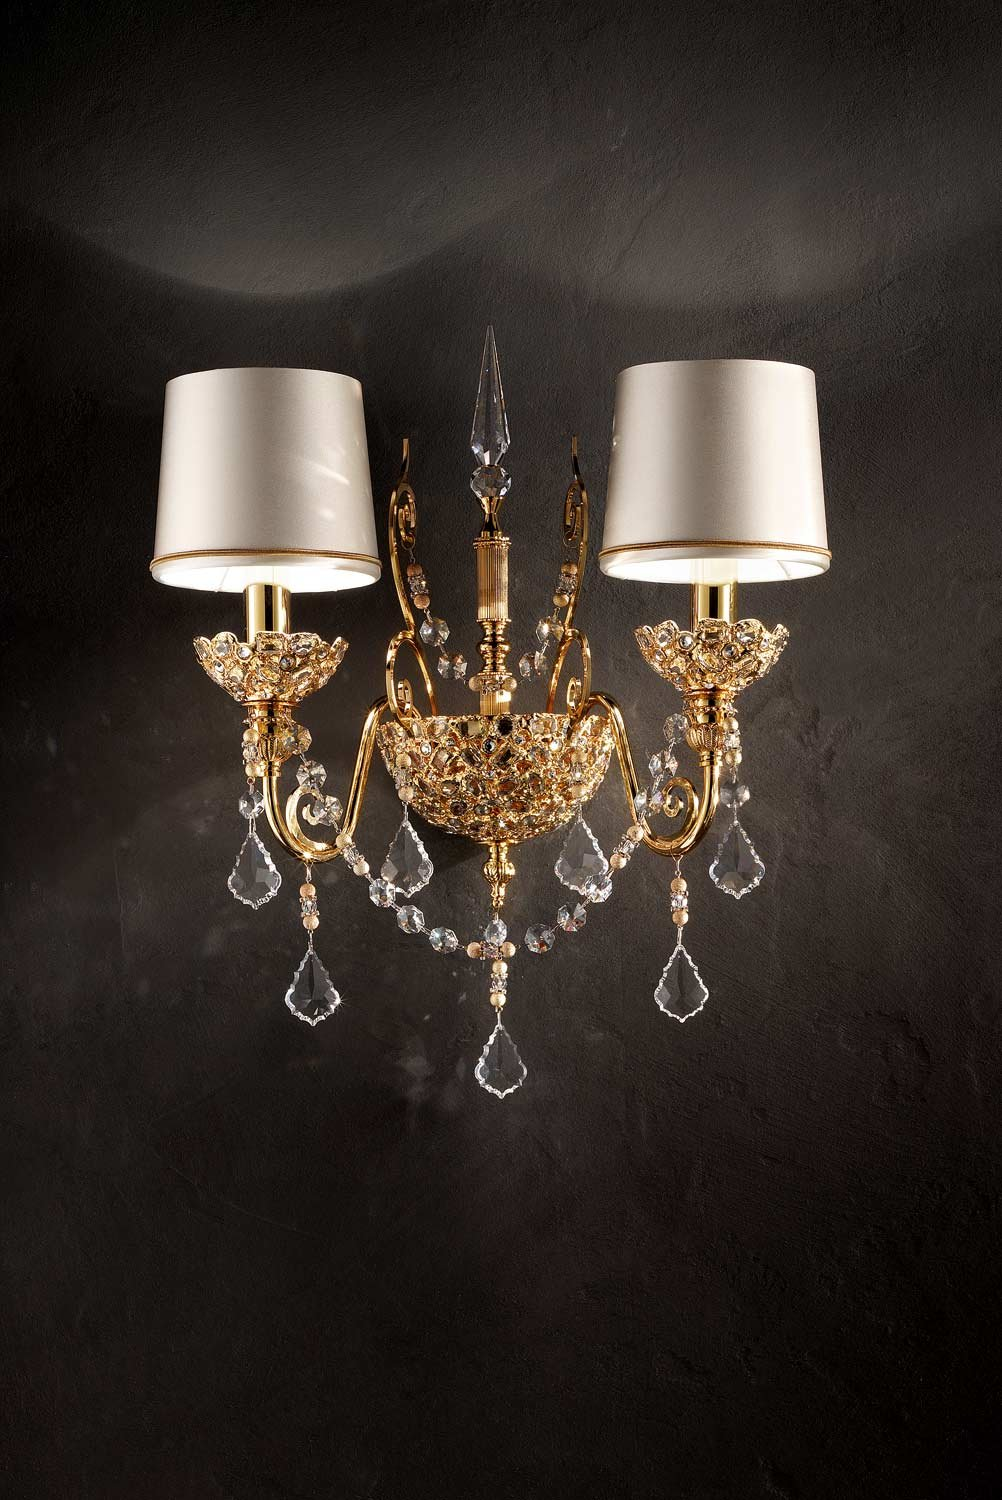 masiero aplique Imperials 12 Gold Plated a mano, Made in Italy, Made with Crystal garlands